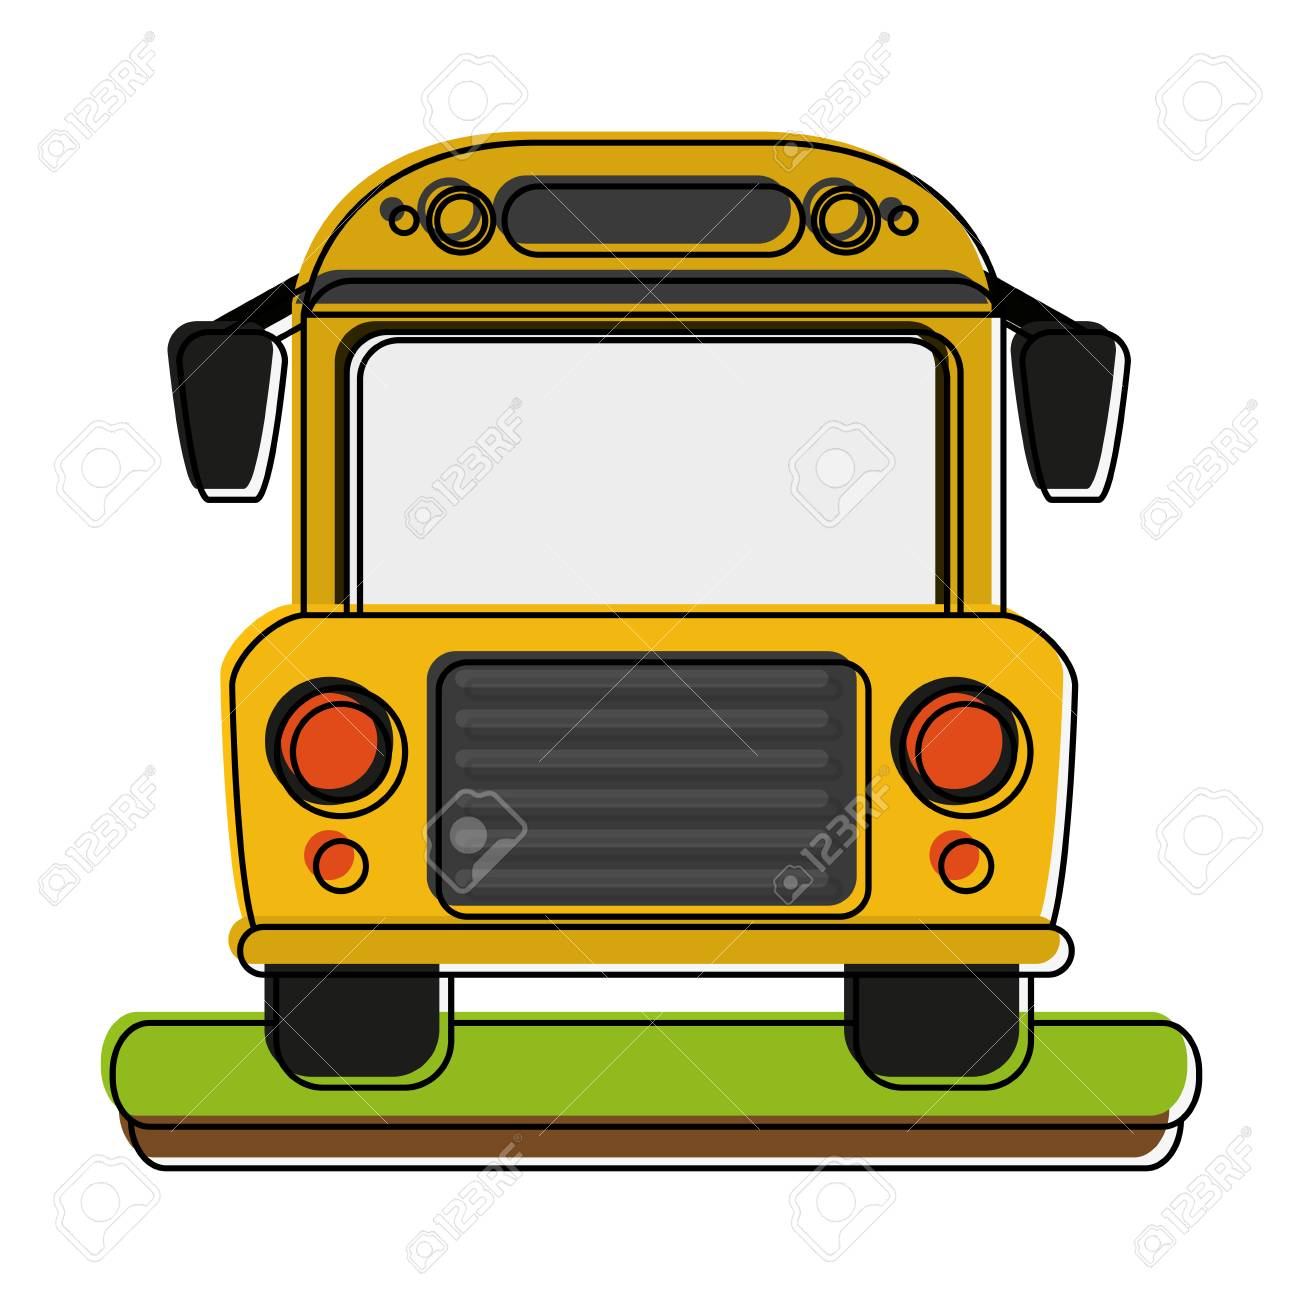 school bus front view icon illustration royalty free cliparts rh 123rf com Racing Tire Clip Art Bus Stop Sign Clip Art